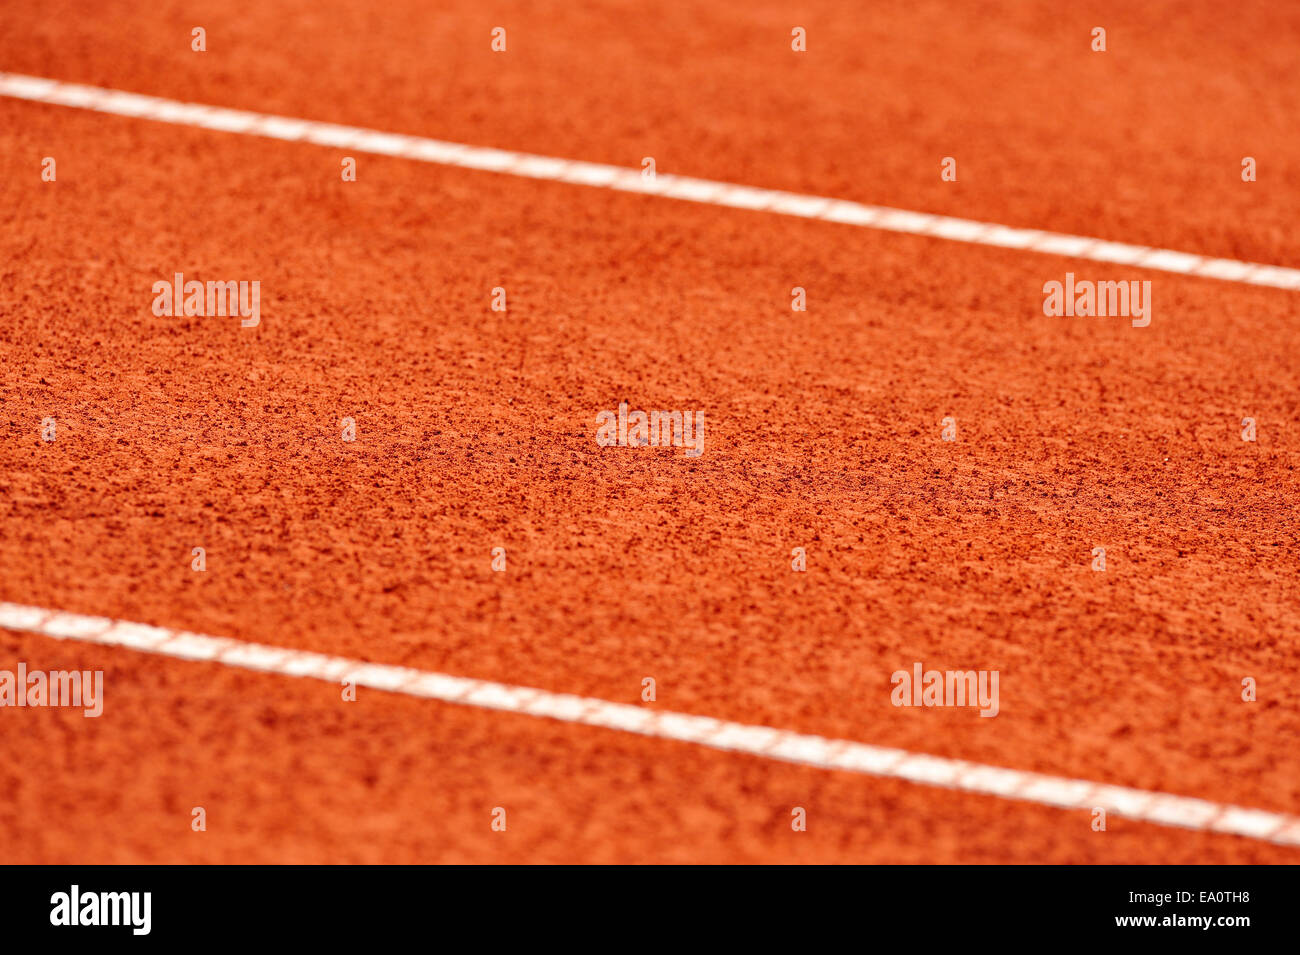 Detail with sidelines on a wet tennis clay court - Stock Image